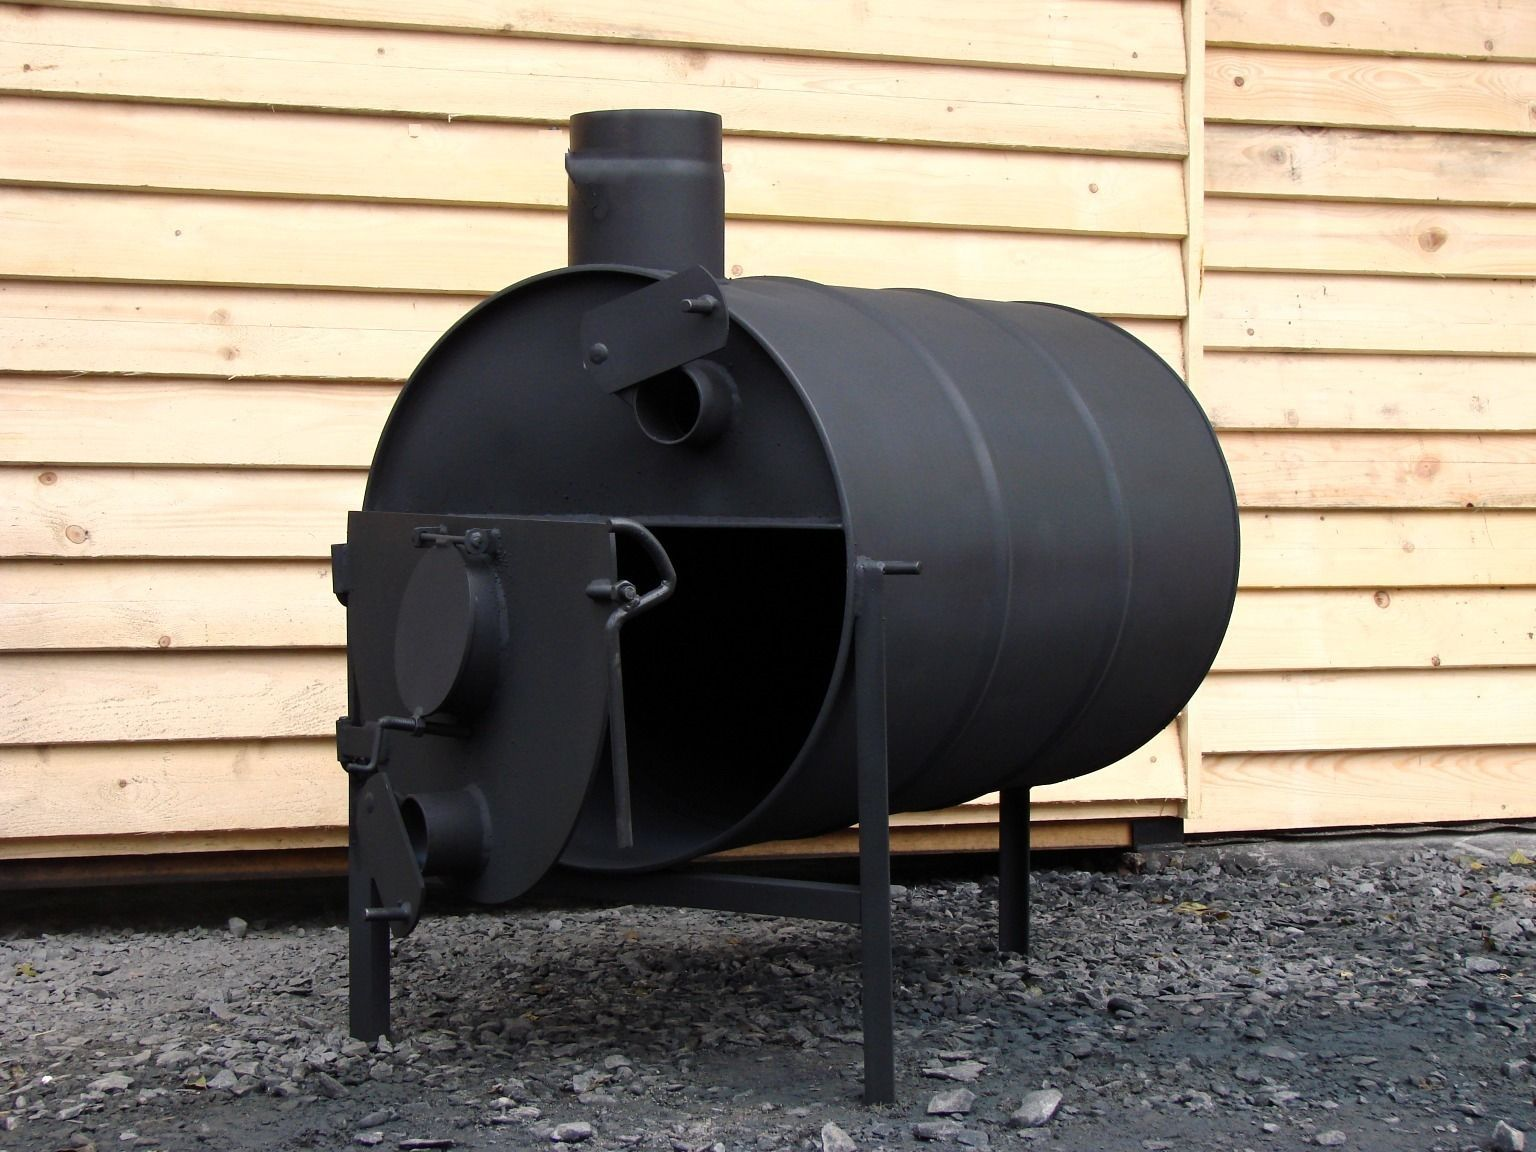 Grilling Wood Furnace Fire Homes Grill Party